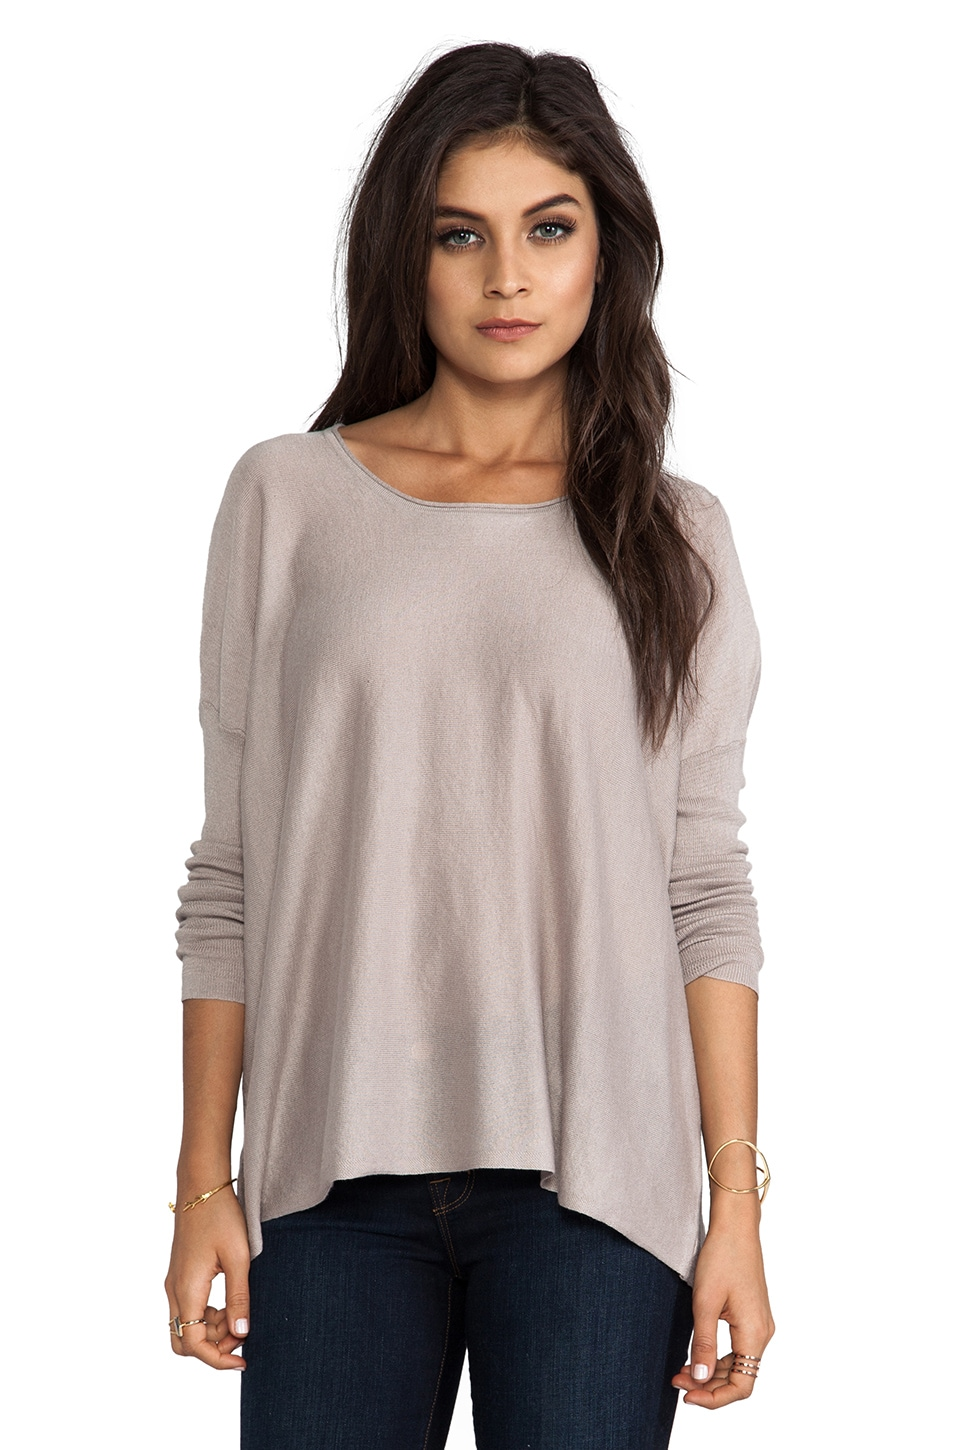 Feel the Piece Striker Dolman Sweater in Pebble